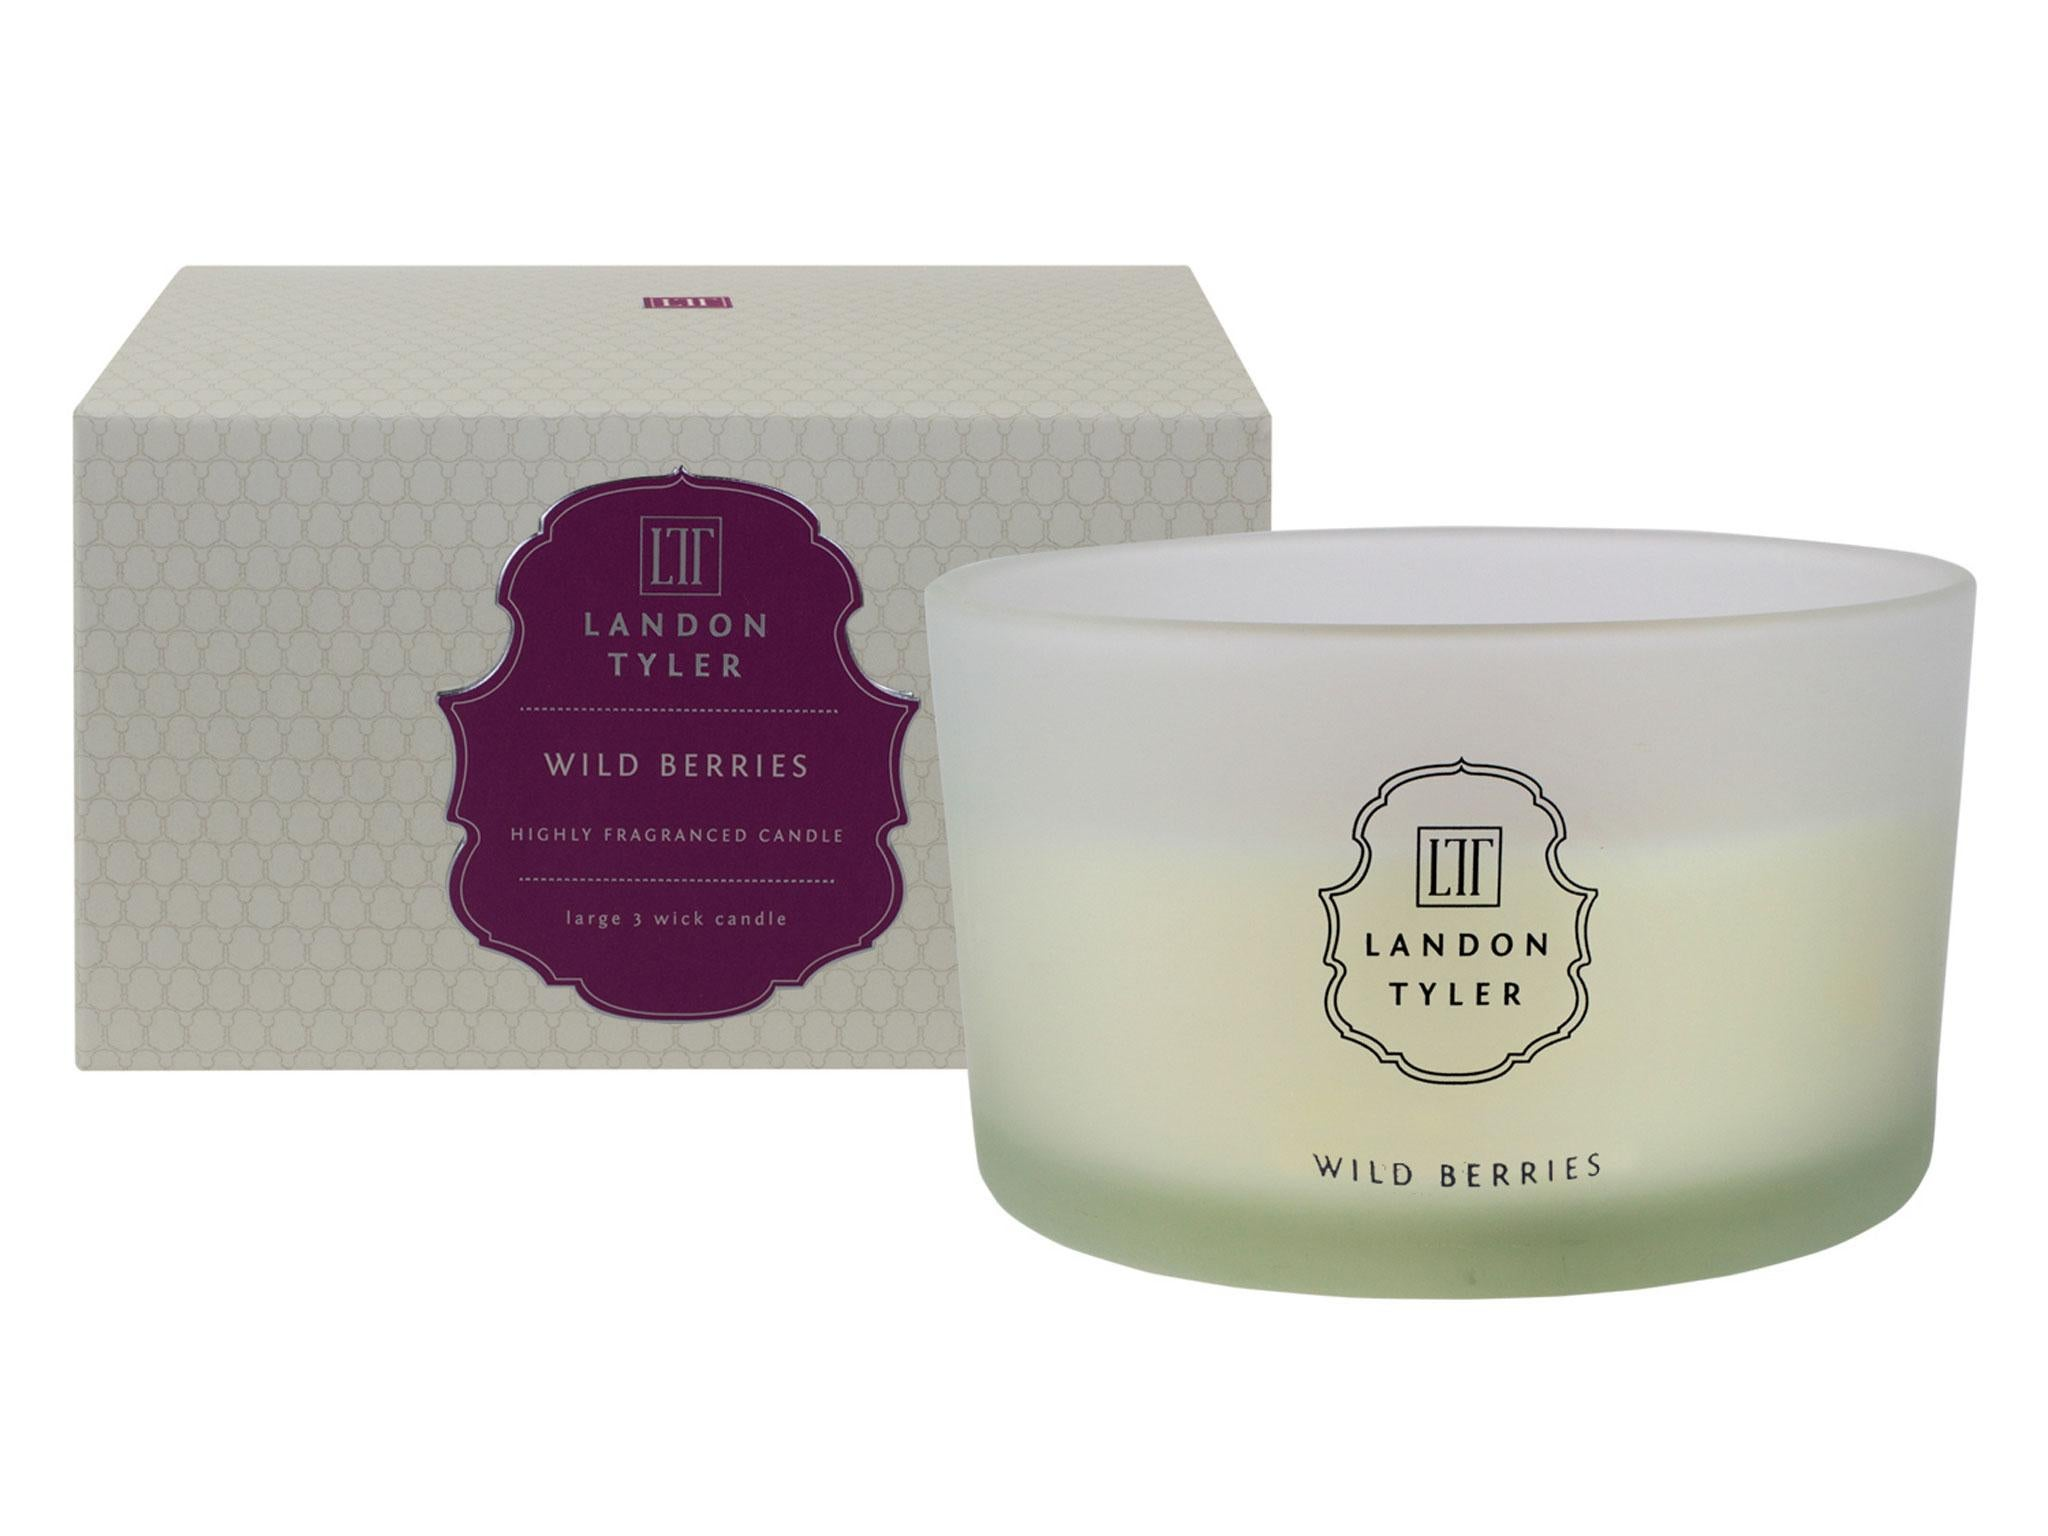 14 Best Scented Candles For Autumn The Independent Cottage Happy Shower Sex On Beach 250 Ml Cranberry Candle Lovers Who Favour A Sweet Fruity Smell Combination Of Juicy Cranberries And Raspberries From New Home Fragrance Brand Landon Tyler Could Be